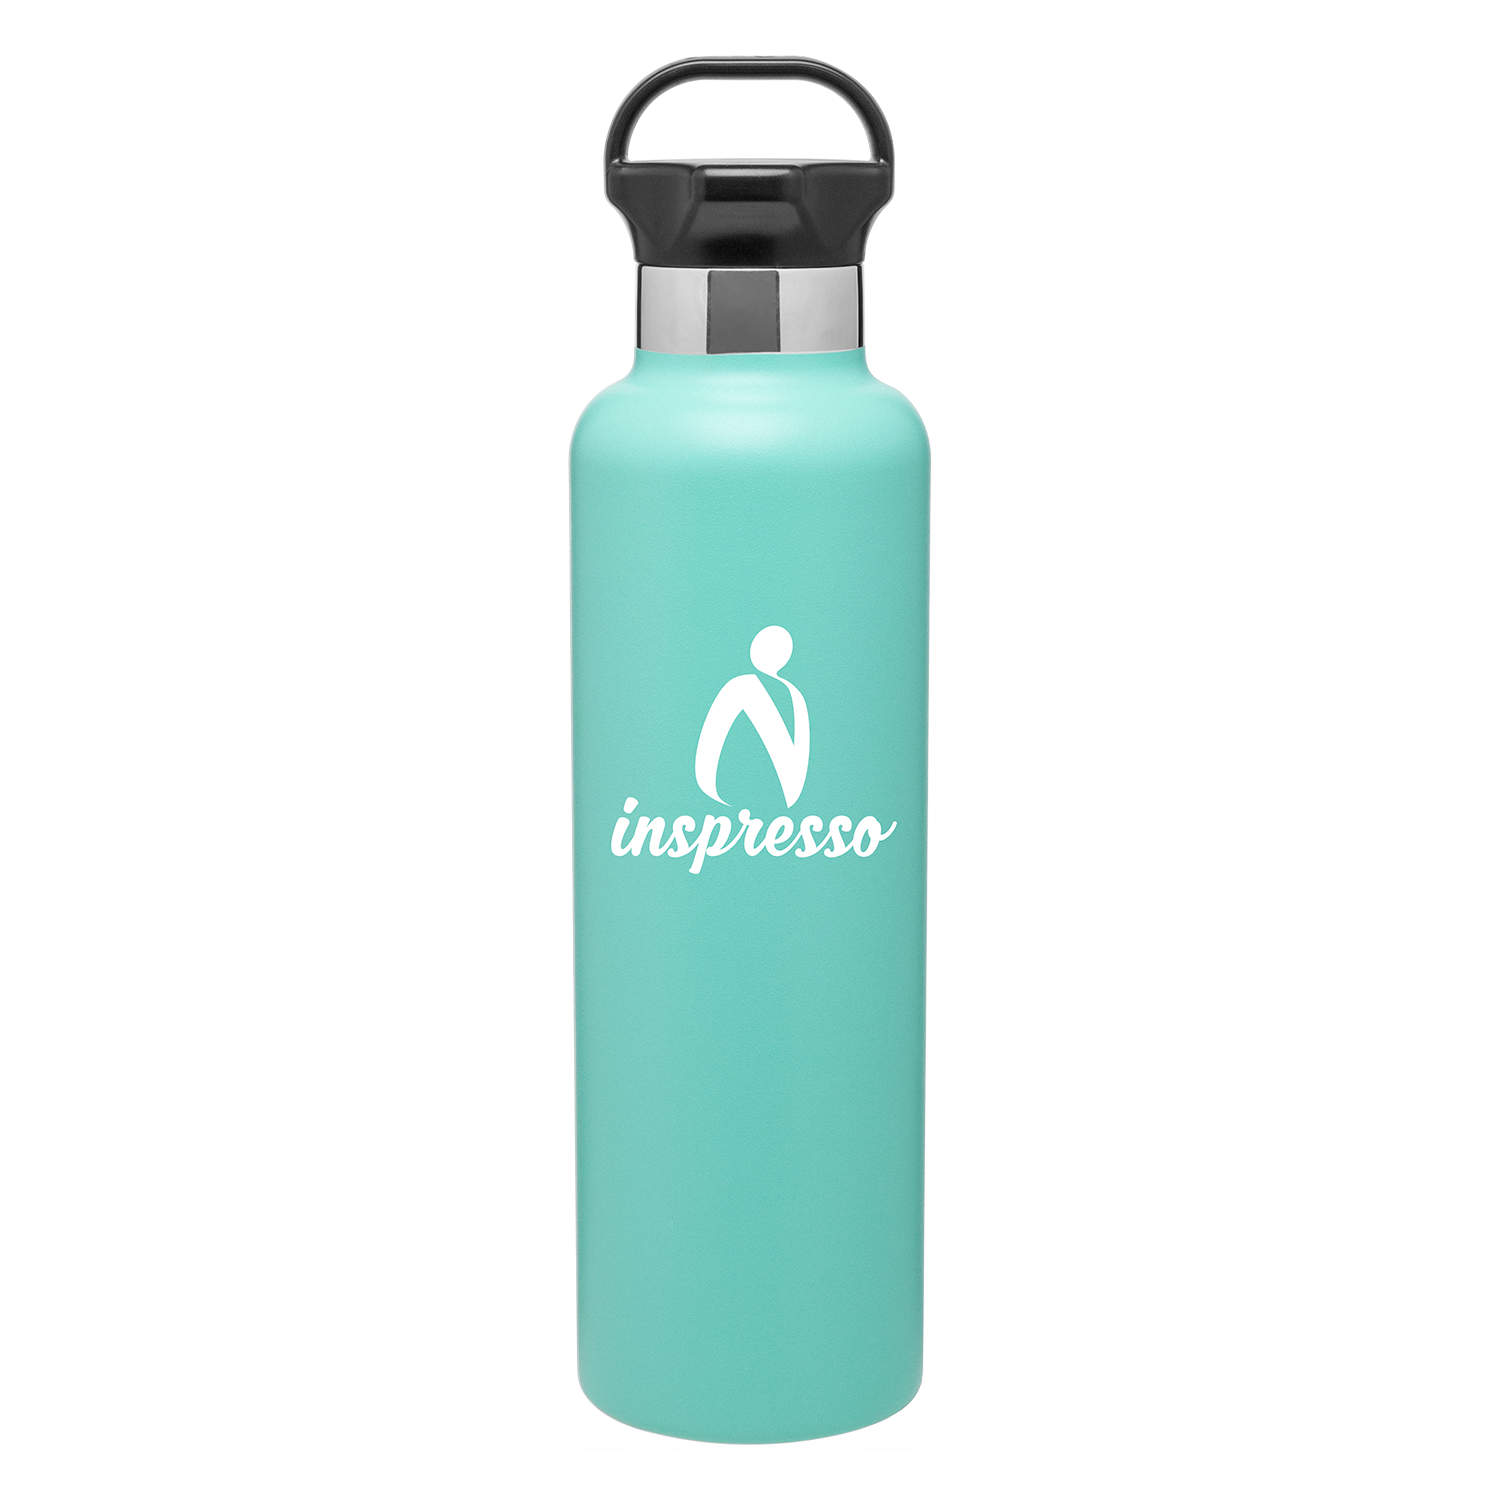 Stainless Steel Water Bottle Similar to HydroFlask®.